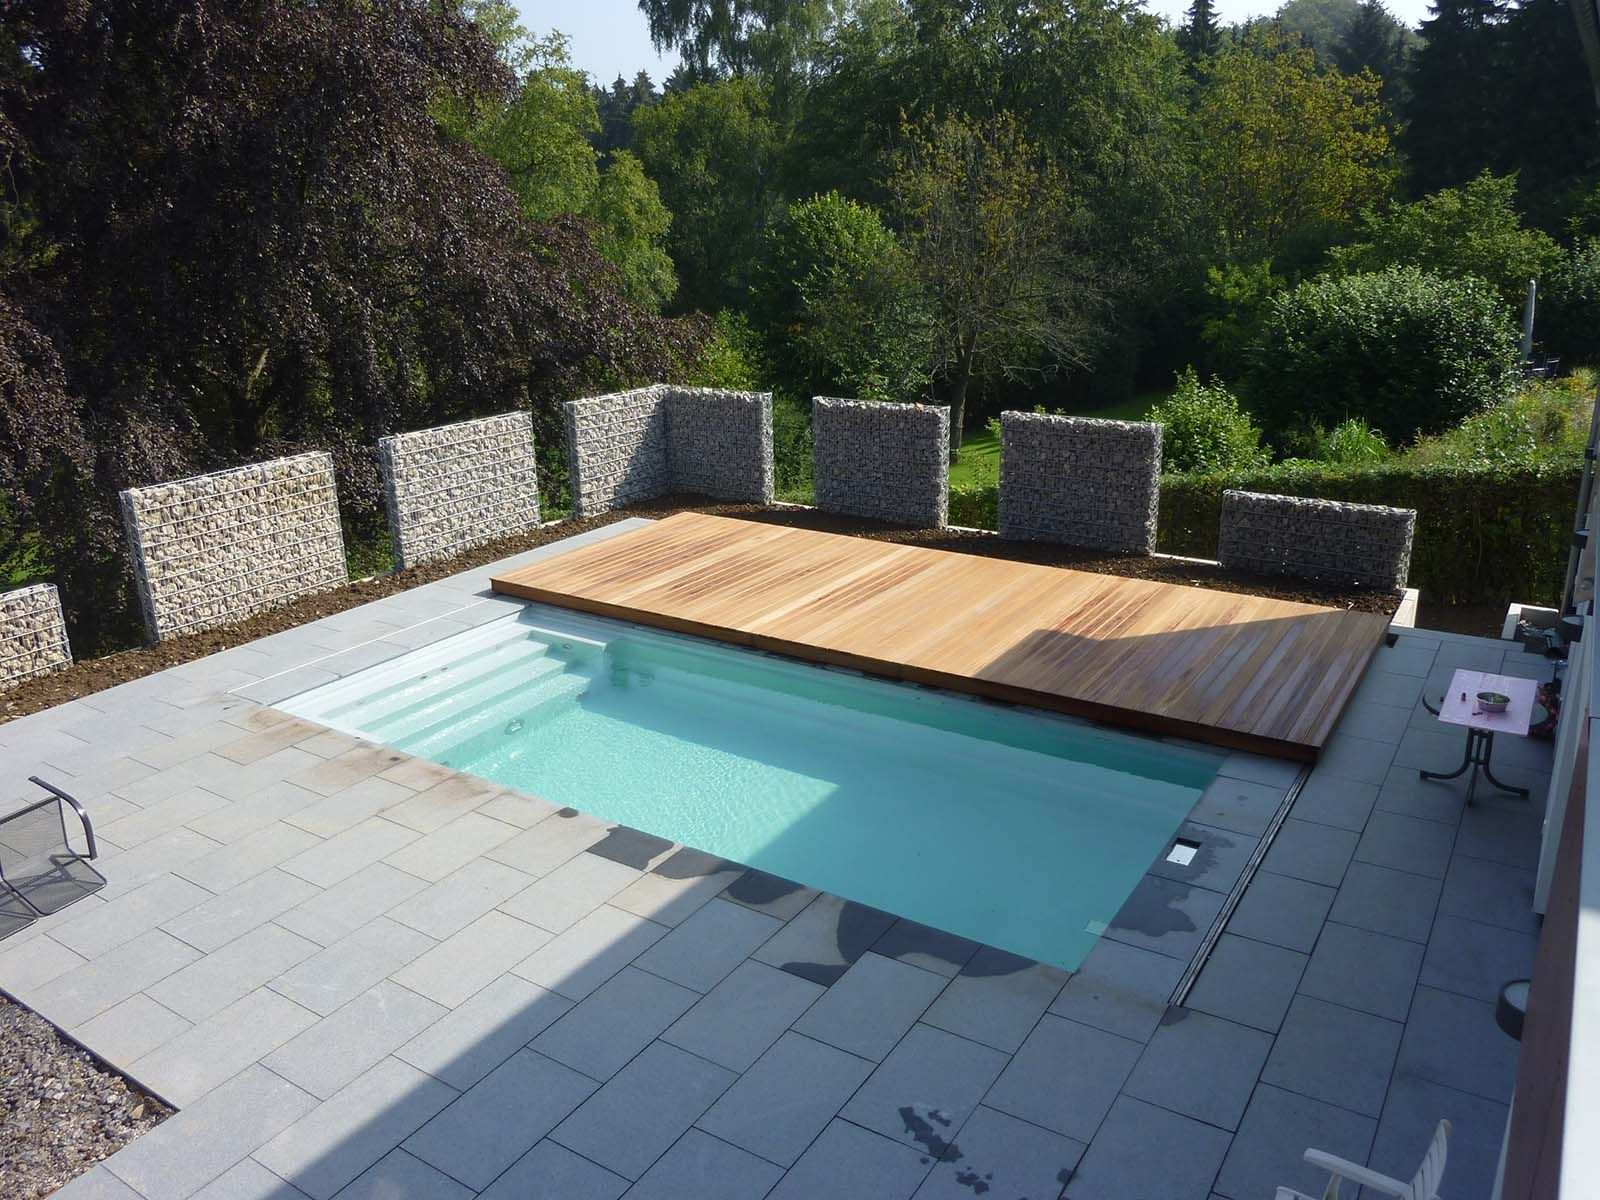 ^ 1000+ ideas about Poolabdeckung on Pinterest Deckbelag, Pool mit ...